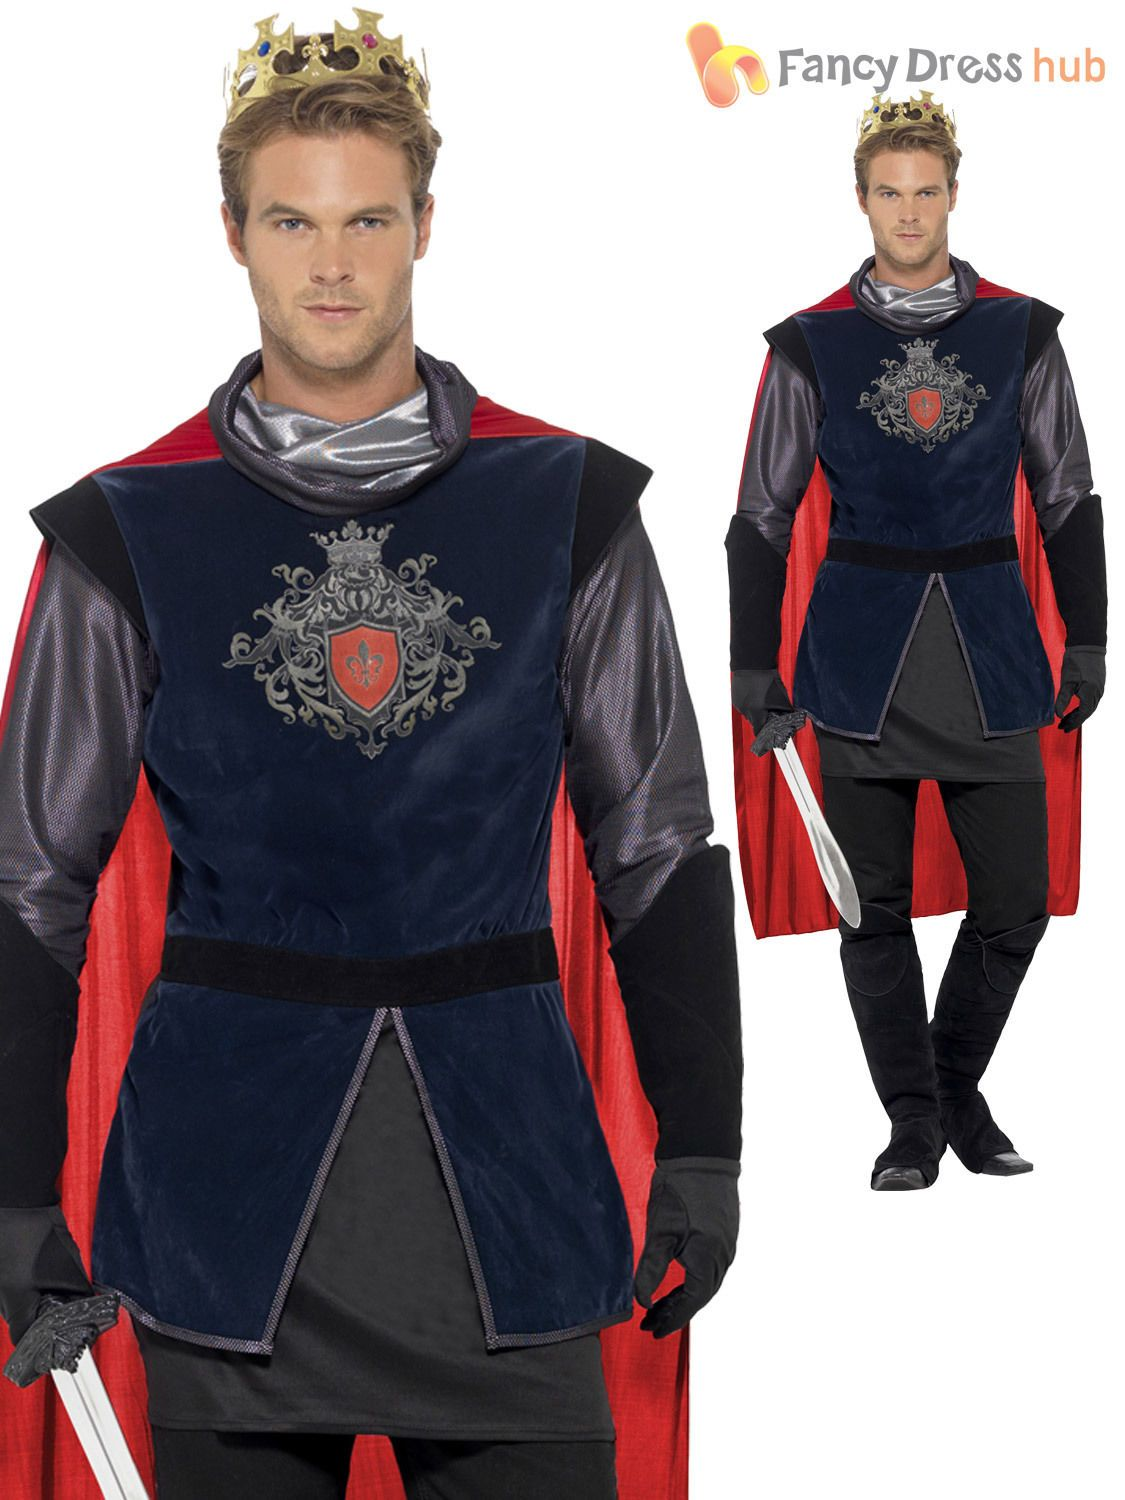 King Arthur Medieval Knight England Historic Mens Adults Fancy Dress Costume